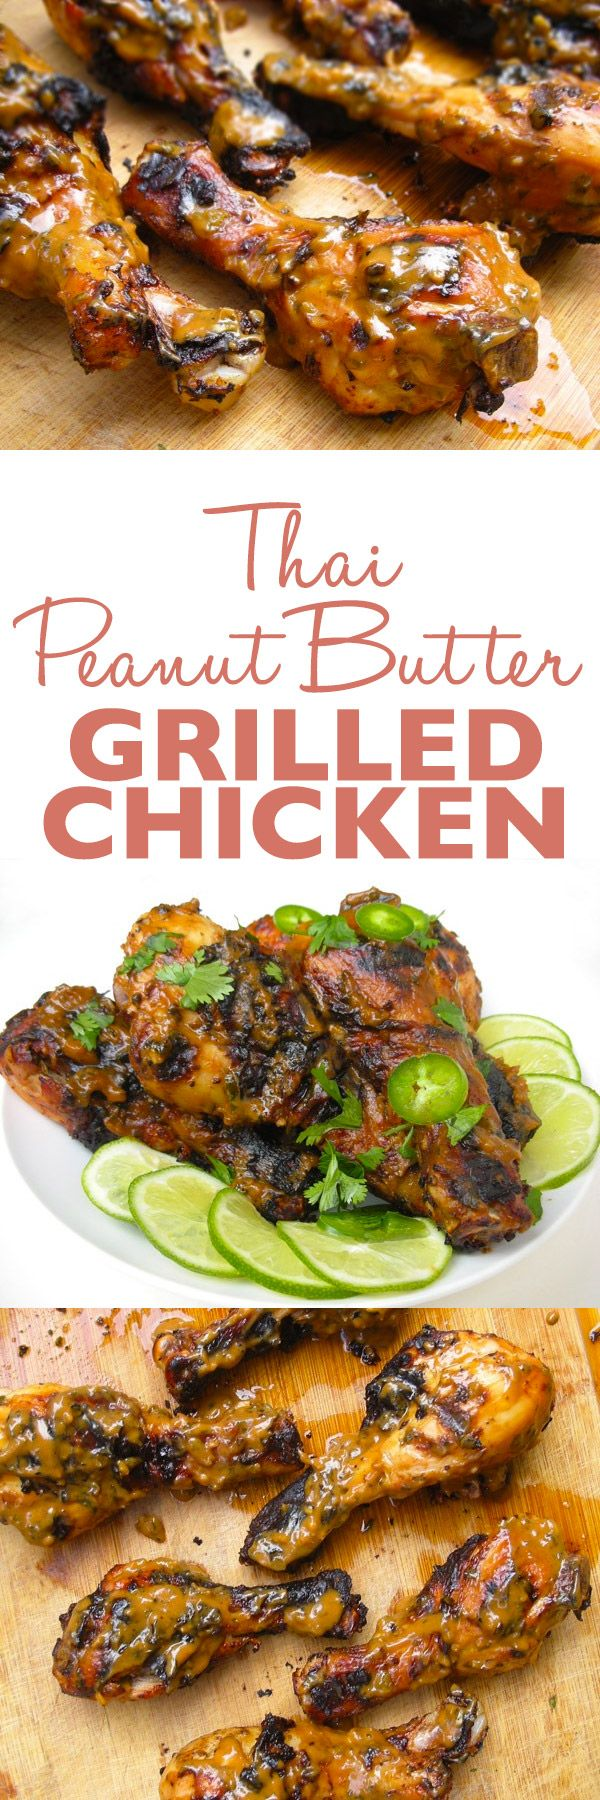 Thai Peanut Butter Grilled Chicken Recipe - Chicken drumsticks are seasoned with a Thai peanut butter marinade, grilled, and then finished with a thick, slightly sweet sauce. (Chicken Marinade For The Grill)